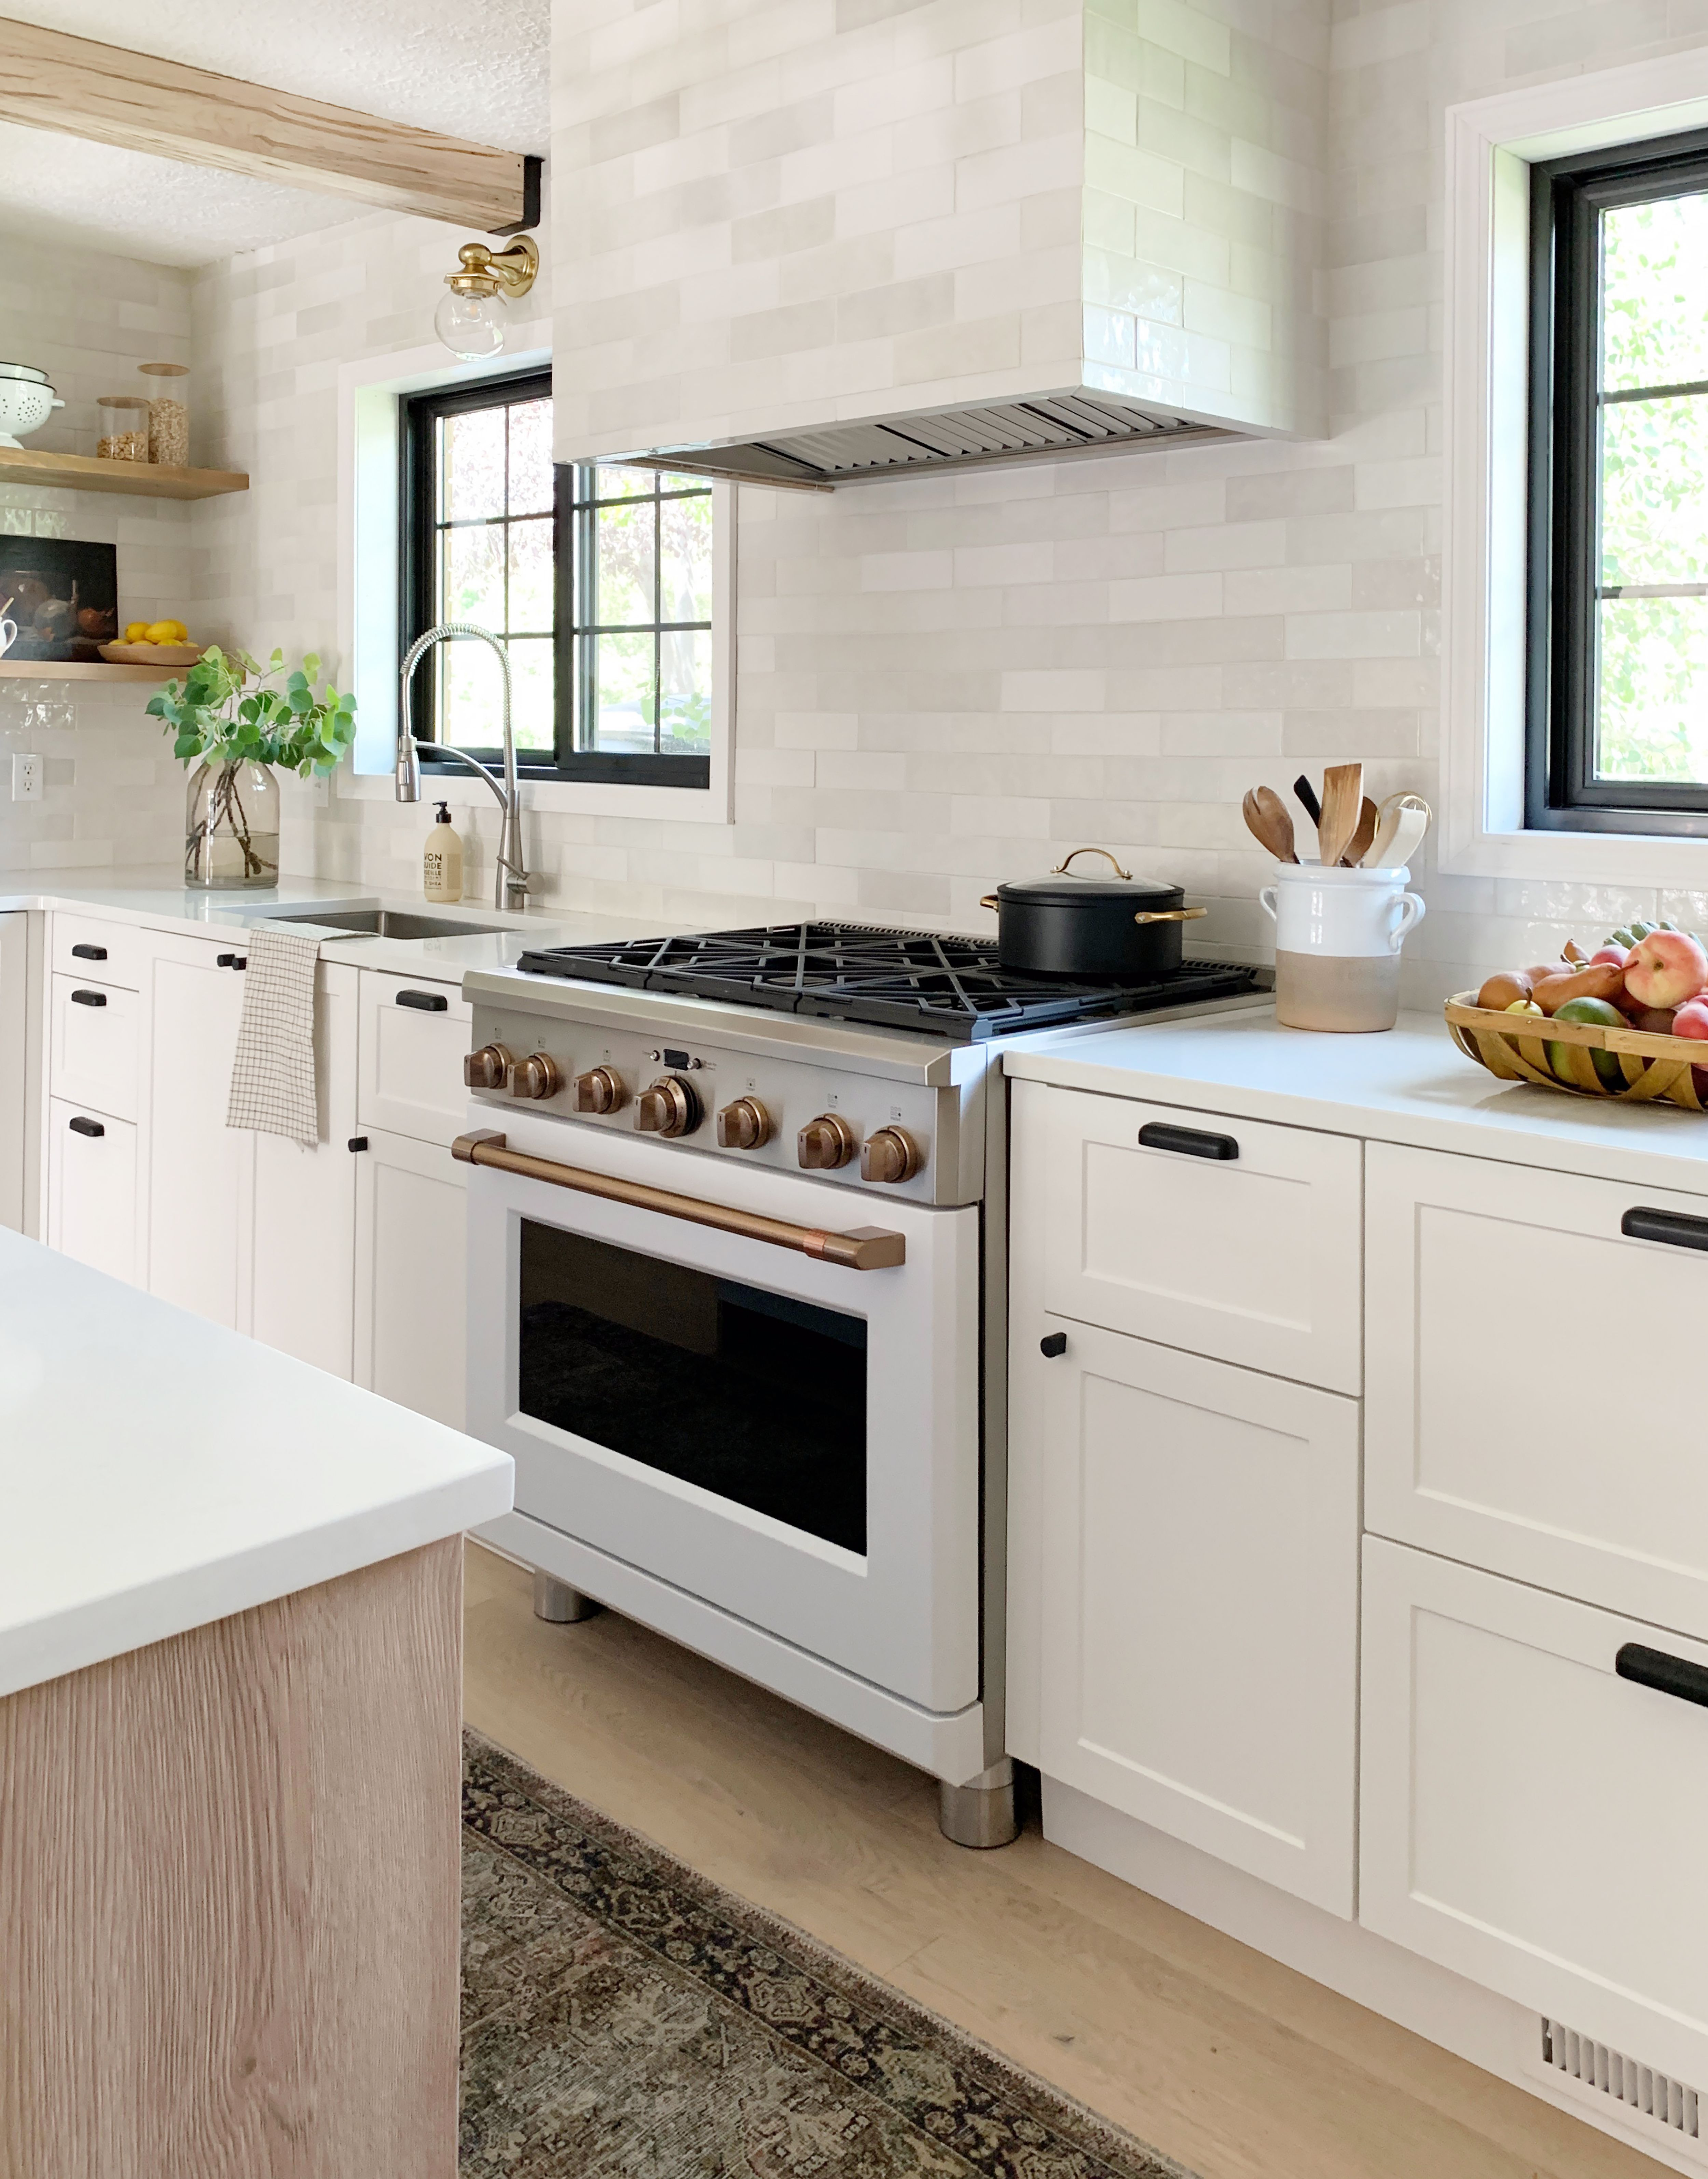 This Stunning Kitchen Makeover By Chris Loves Julia Features An Ingenious Ikea Hack Hunker Home Decor Kitchen Budget Kitchen Makeover Modern Kitchen Design